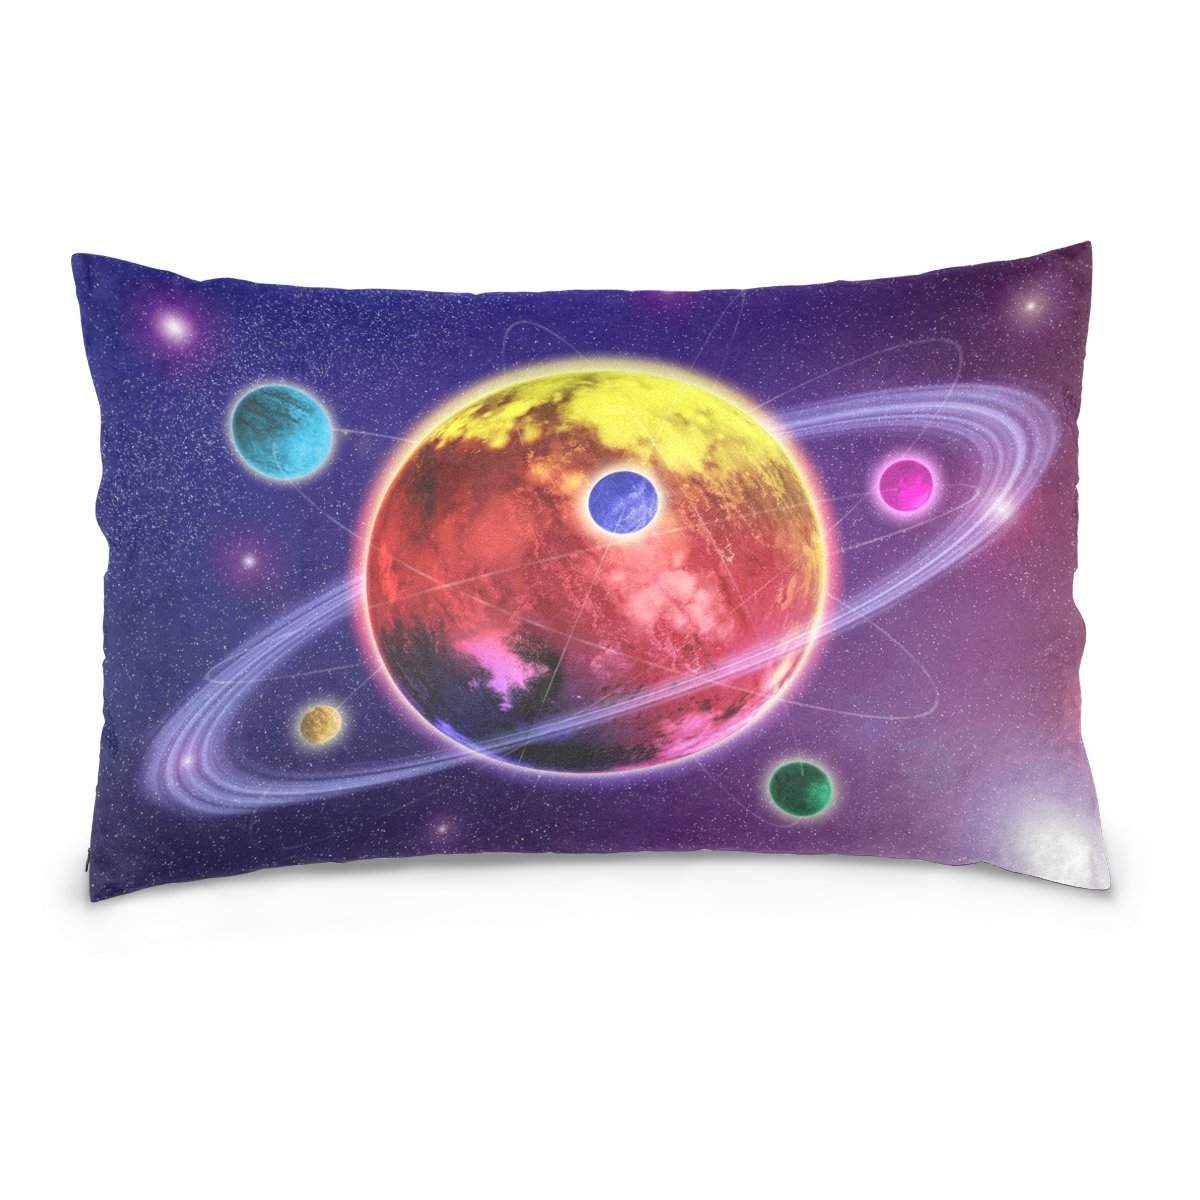 ALAZA Solar System Space Planet Satellite Cotton Lint Pillow Case,Double-sided Printing Home Decor Pillowcase Size 16''x24'',for Bedroom Women Girl Boy